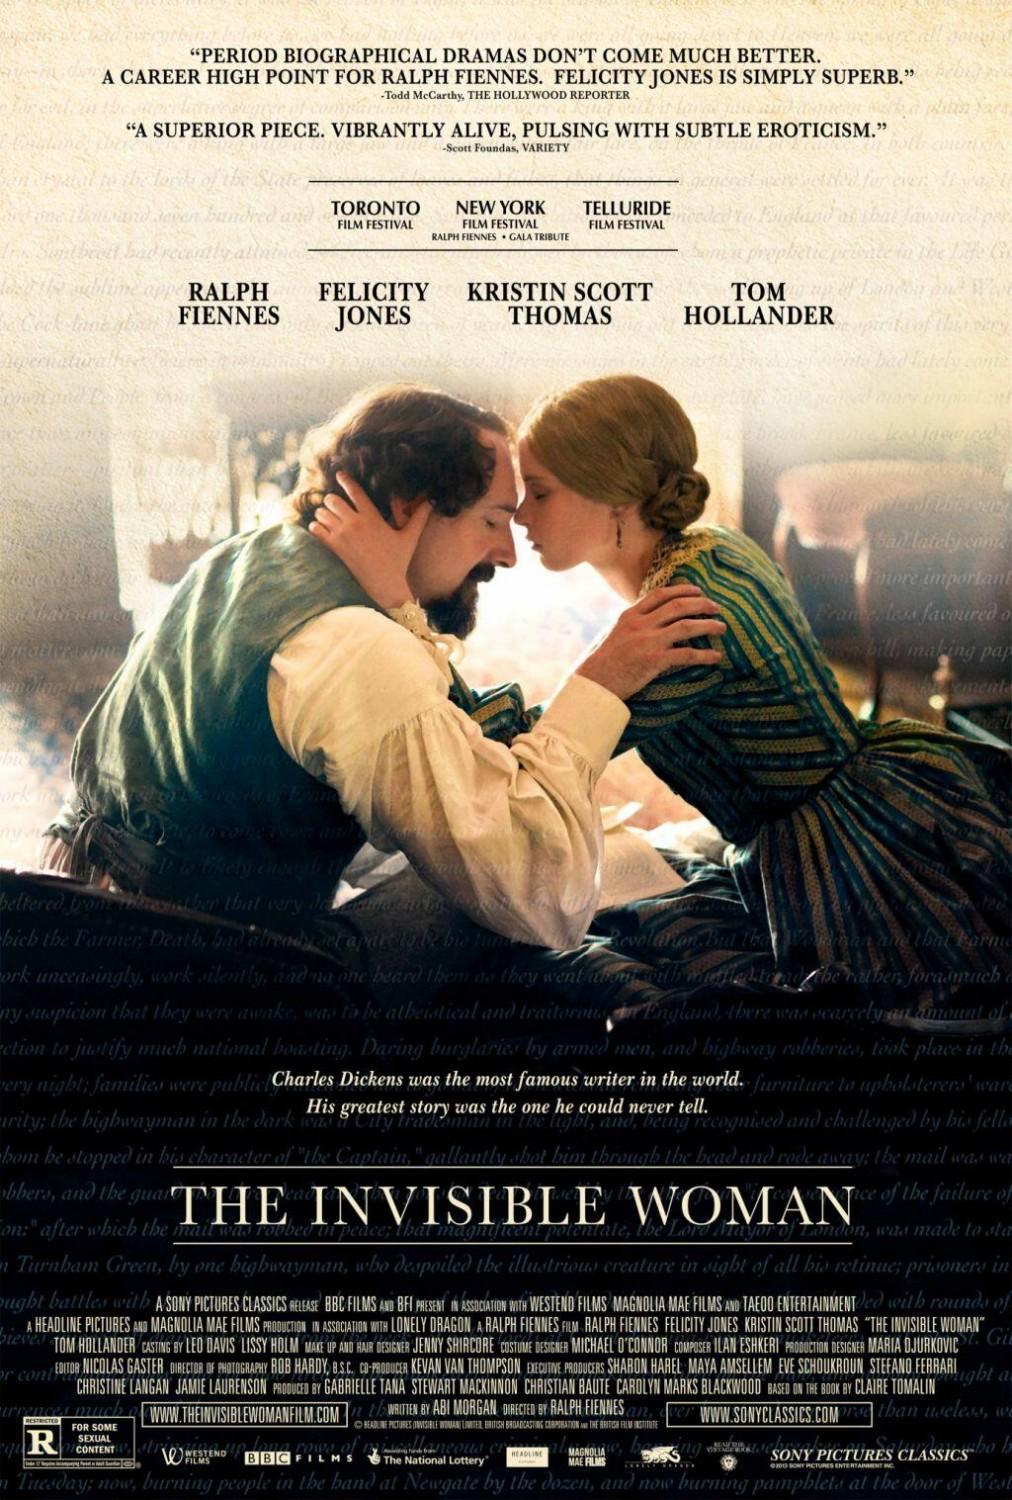 THE INVISIBLE WOMAN-Official Poster Banner PROMO POSTER XLG-21NOVEMBRO2013-01